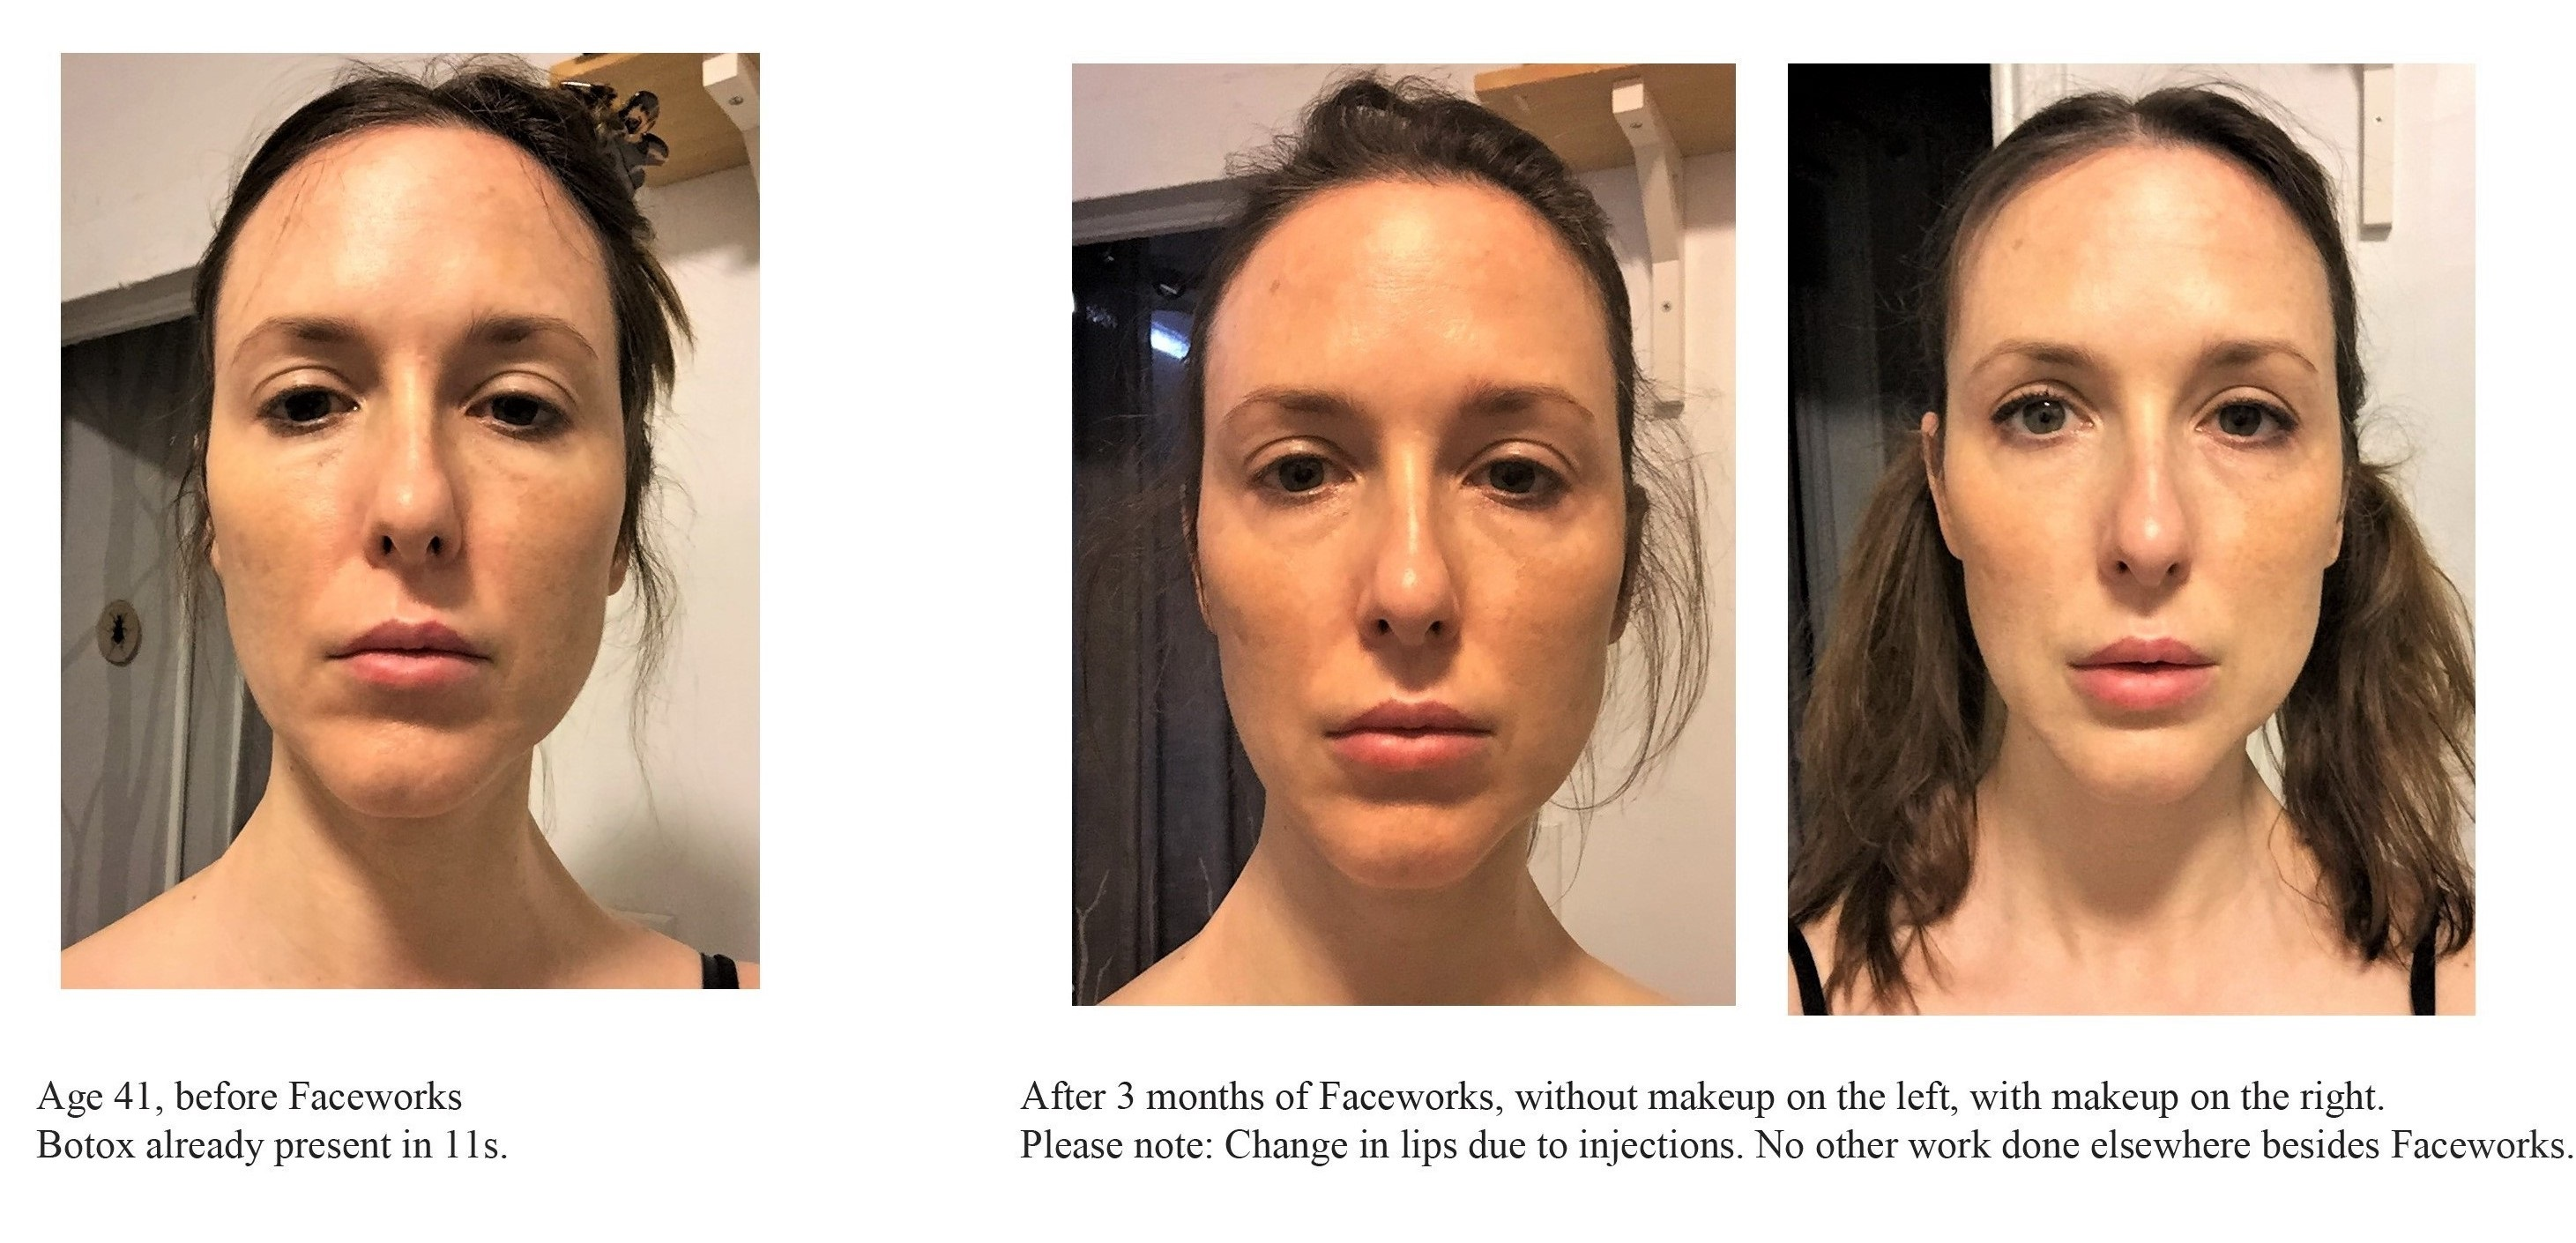 Kerry, USA Before & After Faceworks face exercises